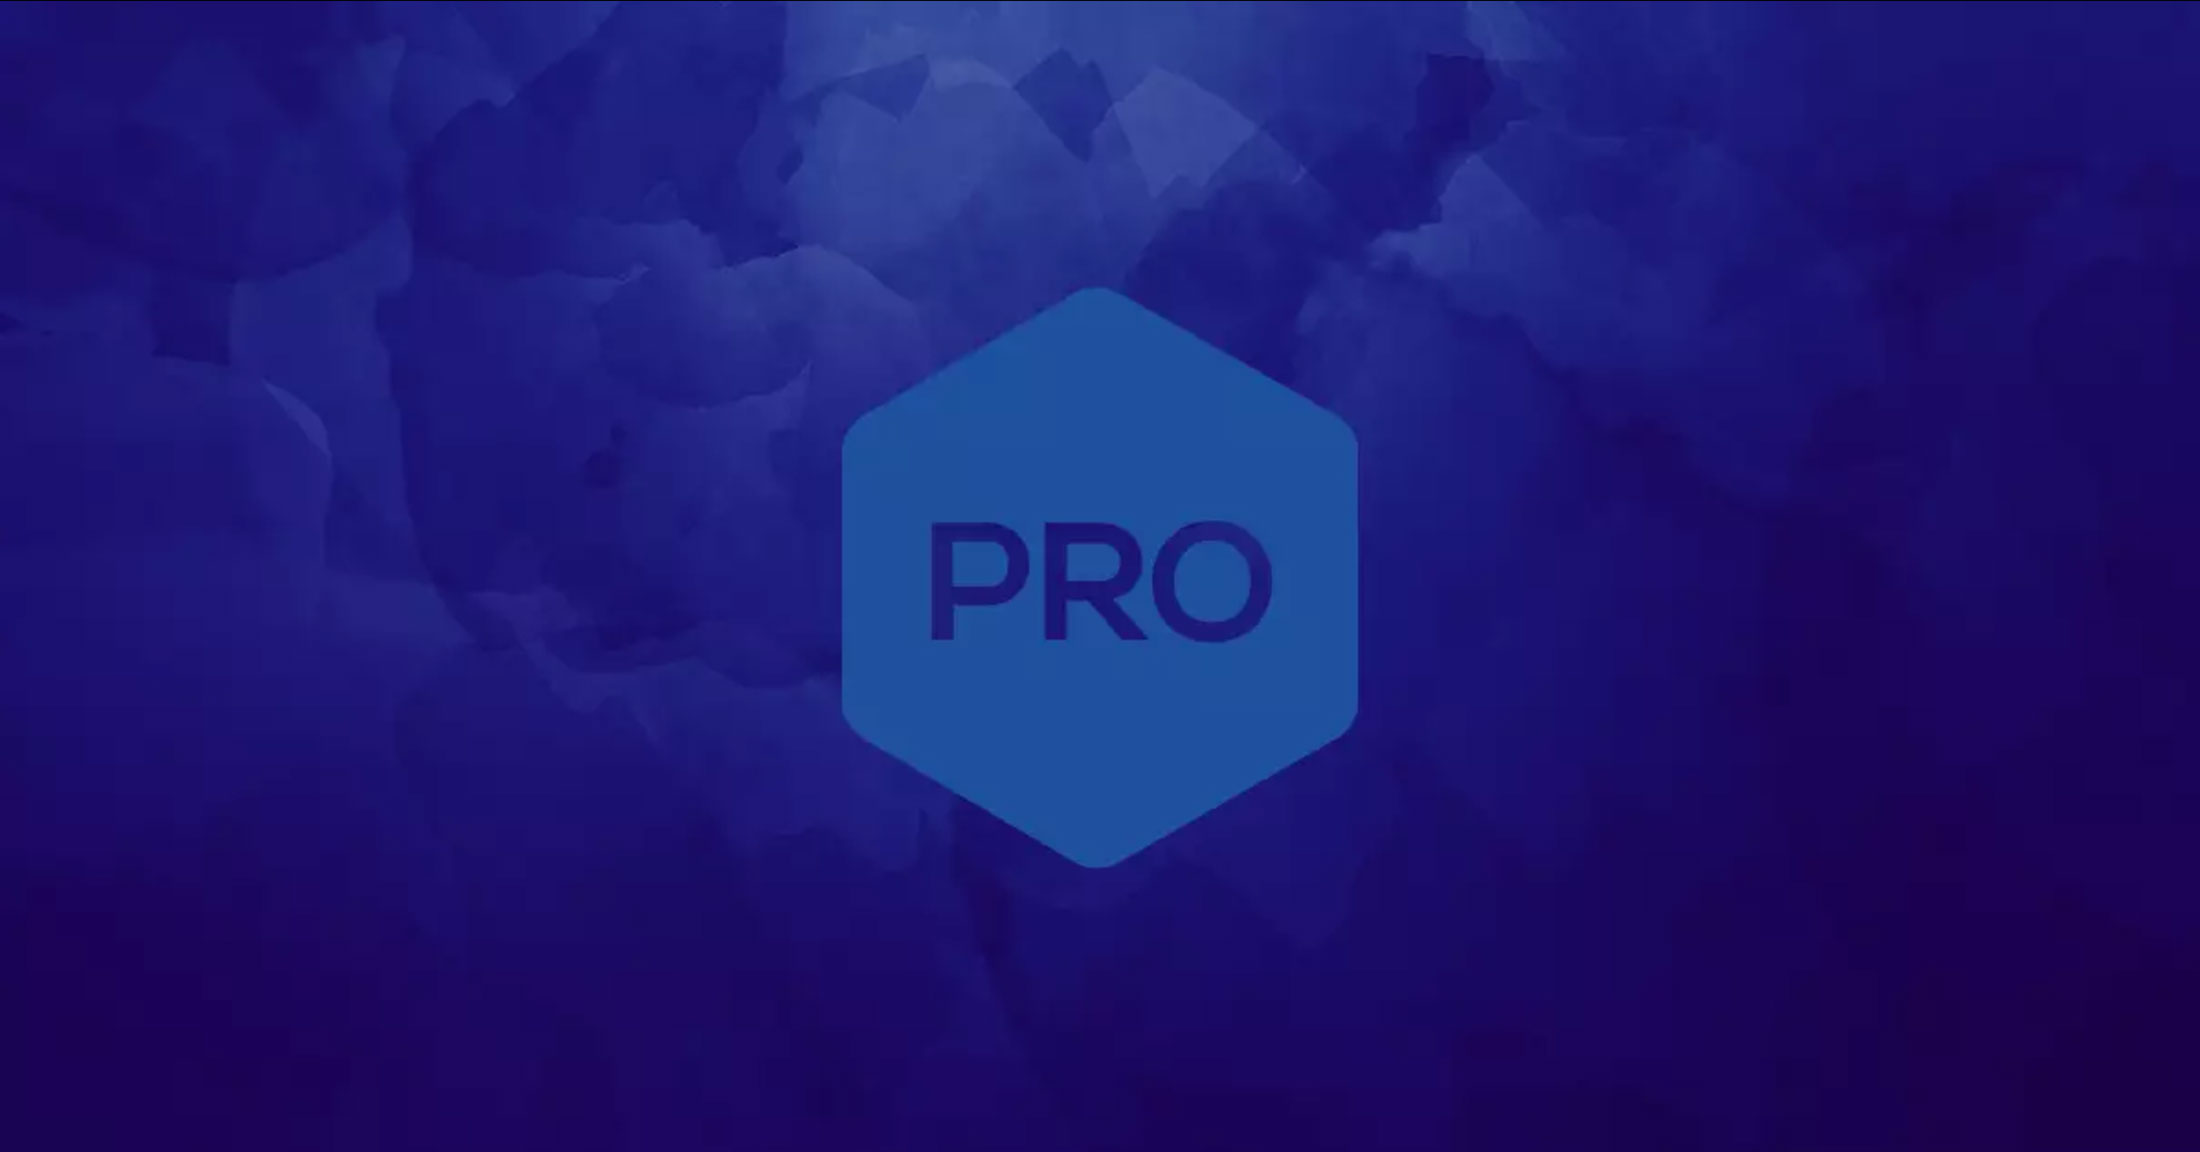 Pro Review For WordPress FT